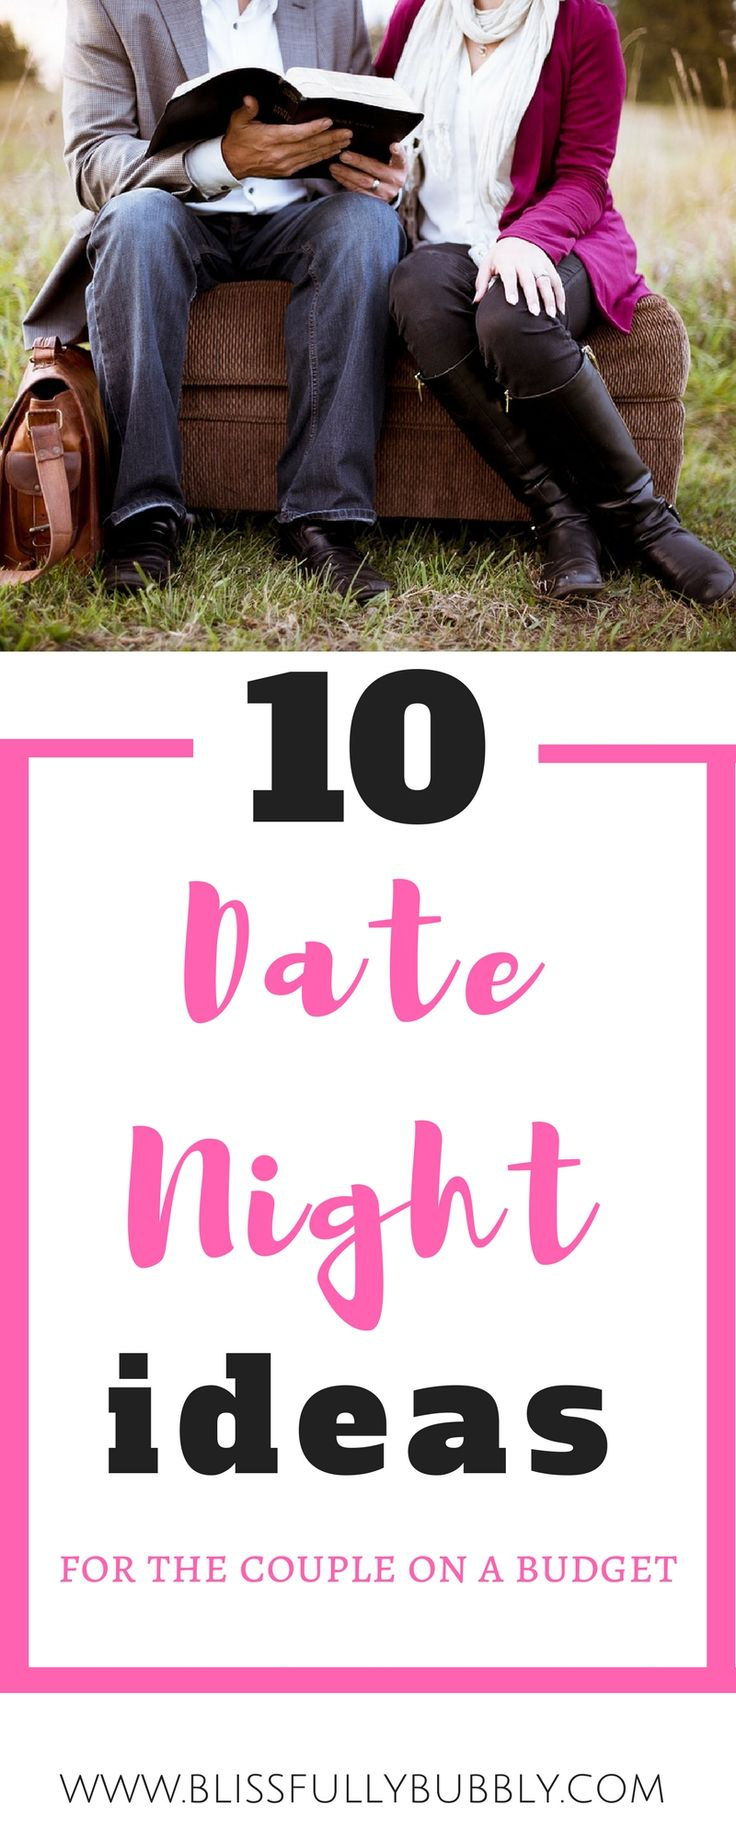 10 cheap date night ideas for the couple on a budget! Romantic date night ideas | date inspiration |marriage | marriage advice | married | dating | relationship goals | relationships | relationship advice | cute couples | romantic couples | intimacy www.blissfullybubbly.com